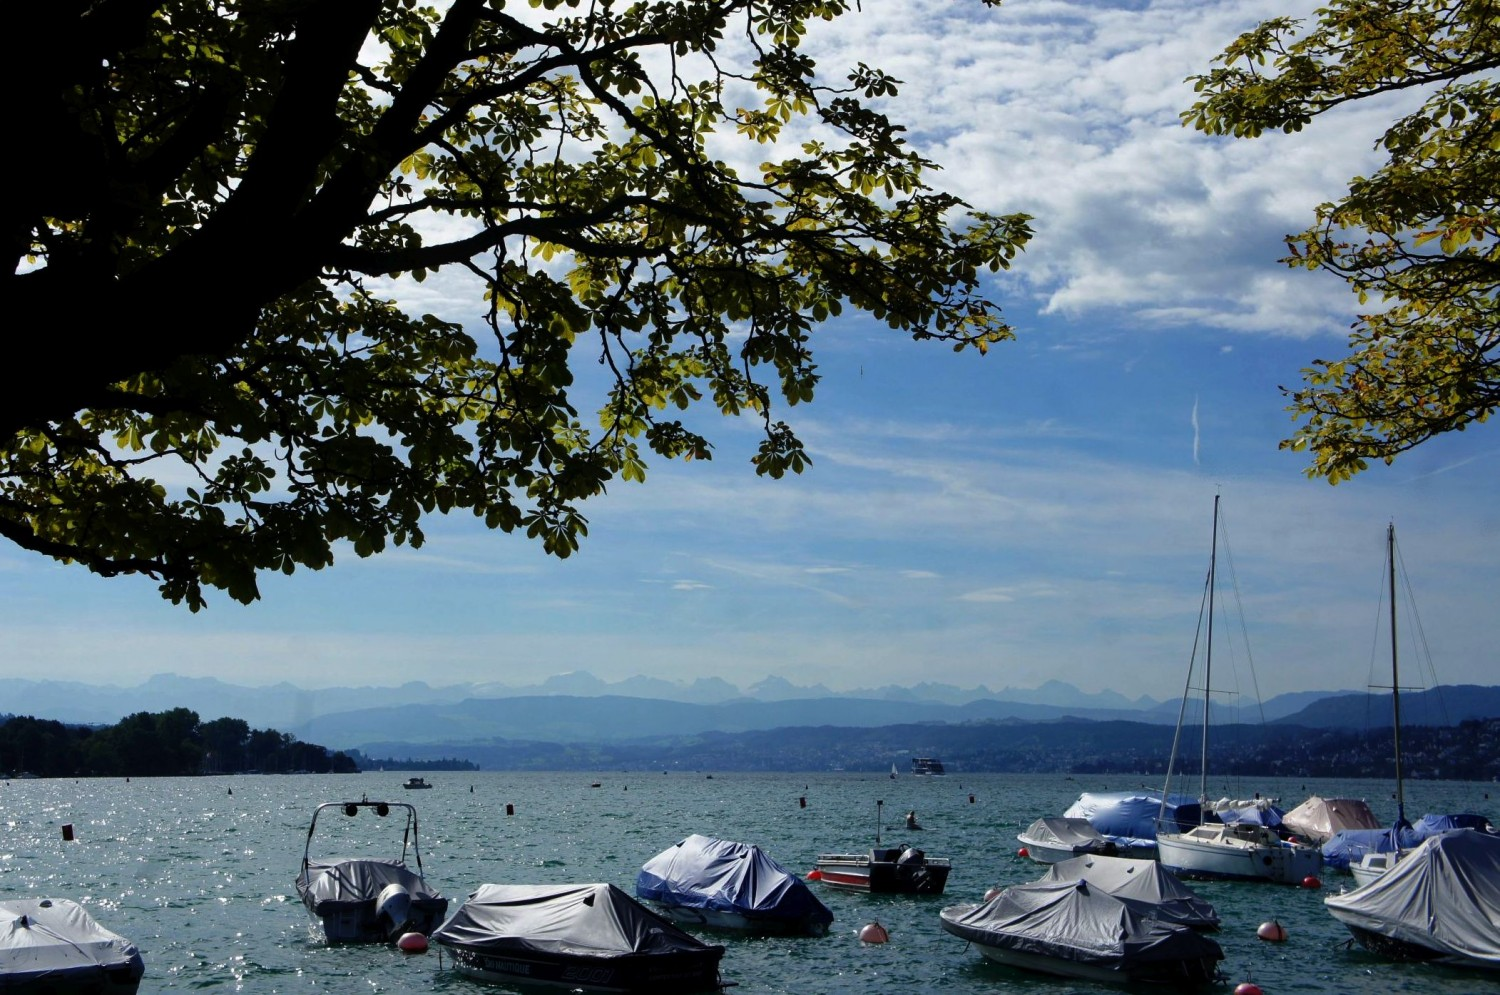 Lake Zürich, Zürich, Switzerland